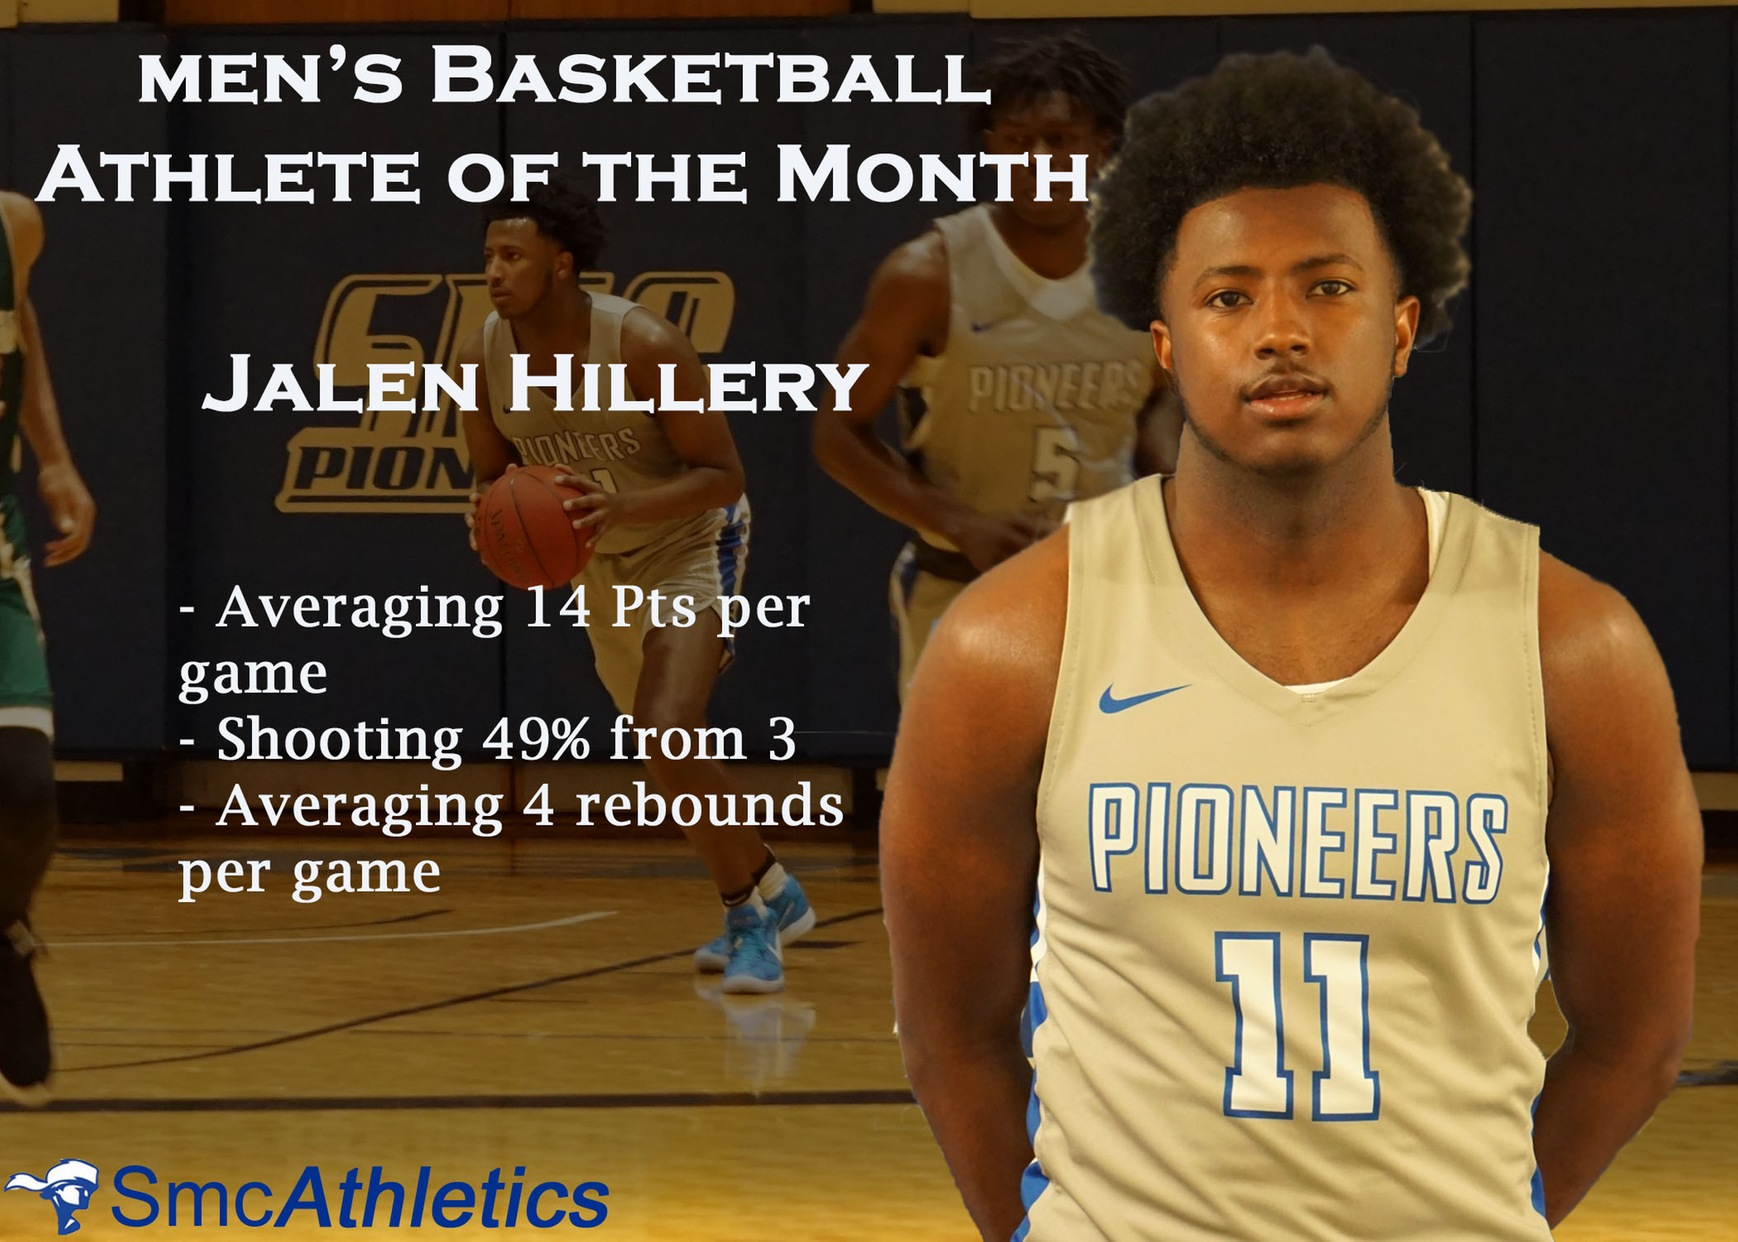 Men's Basketball Athlete of the Month